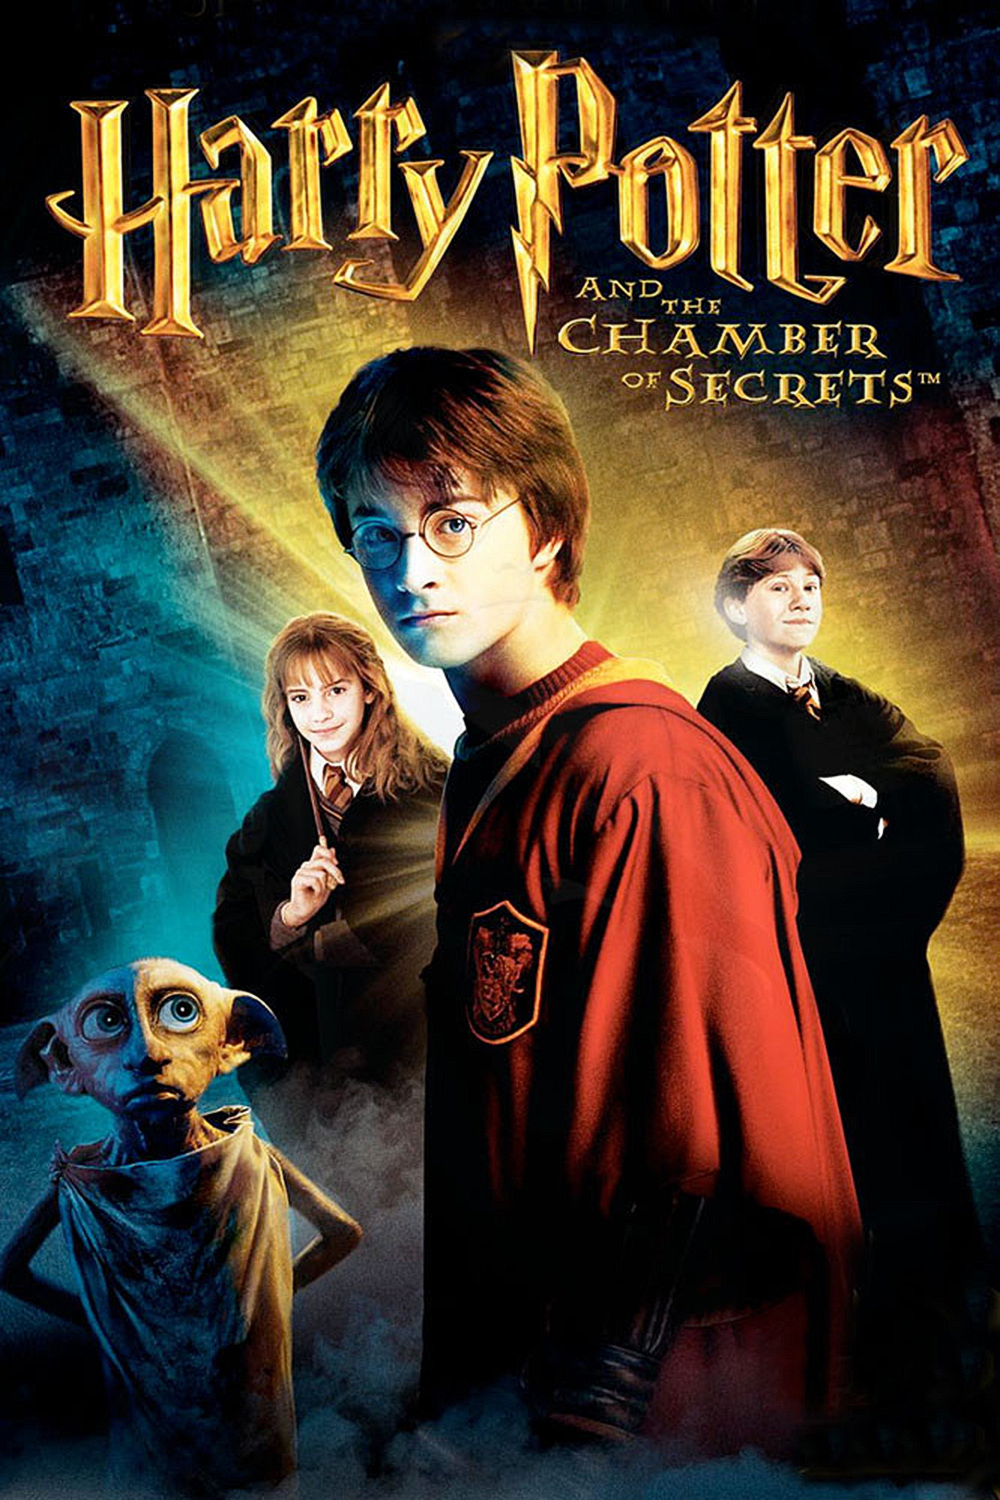 Harry Potter and the Chamber of Secrets (2002) - Directed by: Chris ColombusStarring: Daniel Radcliffe, Rupert Grint, Emma Watson, Toby Jones, Richard Griffiths, Fiona Shaw, Bonnie Wright, Tom Felton, Jason Isaacs, Robbie Coltrane, Kenneth Branagh, Alan Rickman, Richard Harris, Maggie Smith, David Bradley, Warwick DavisRated: PG for Scary Moments, Some Creature Violence and Mild LanguageRunning Time: 2 h 41 mTMM Score: 3 stars out of 5STRENGTHS: Story, Some Production Design, World BuildingWEAKNESSES: Directing, Pacing, Some Production Design, Some Acting